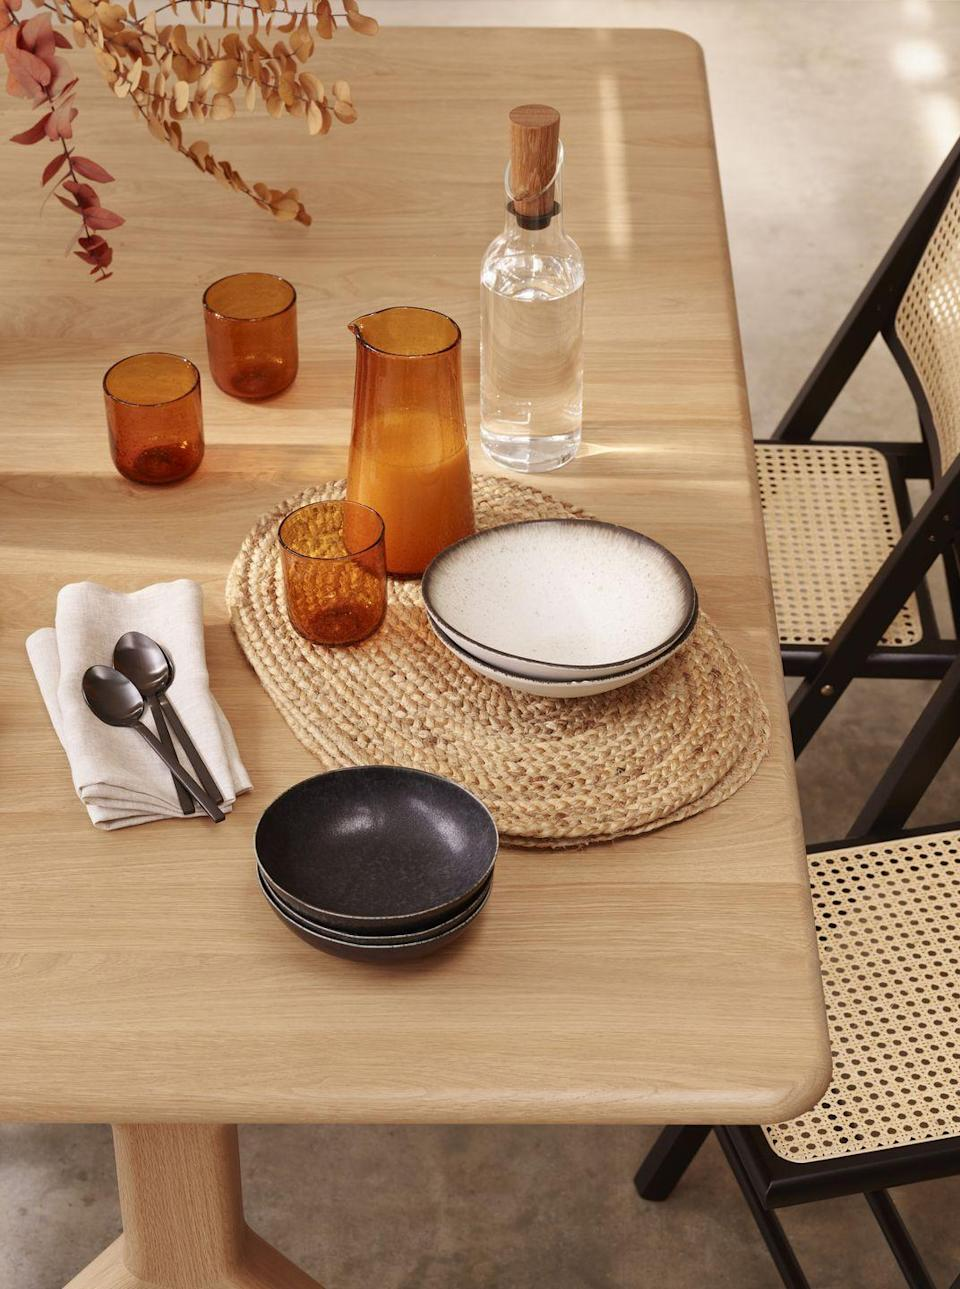 <p>Planning to entertain this winter? John Lewis' range has all you need for a dinnerware update, including bowls, plates, mugs and serving dishes. </p>